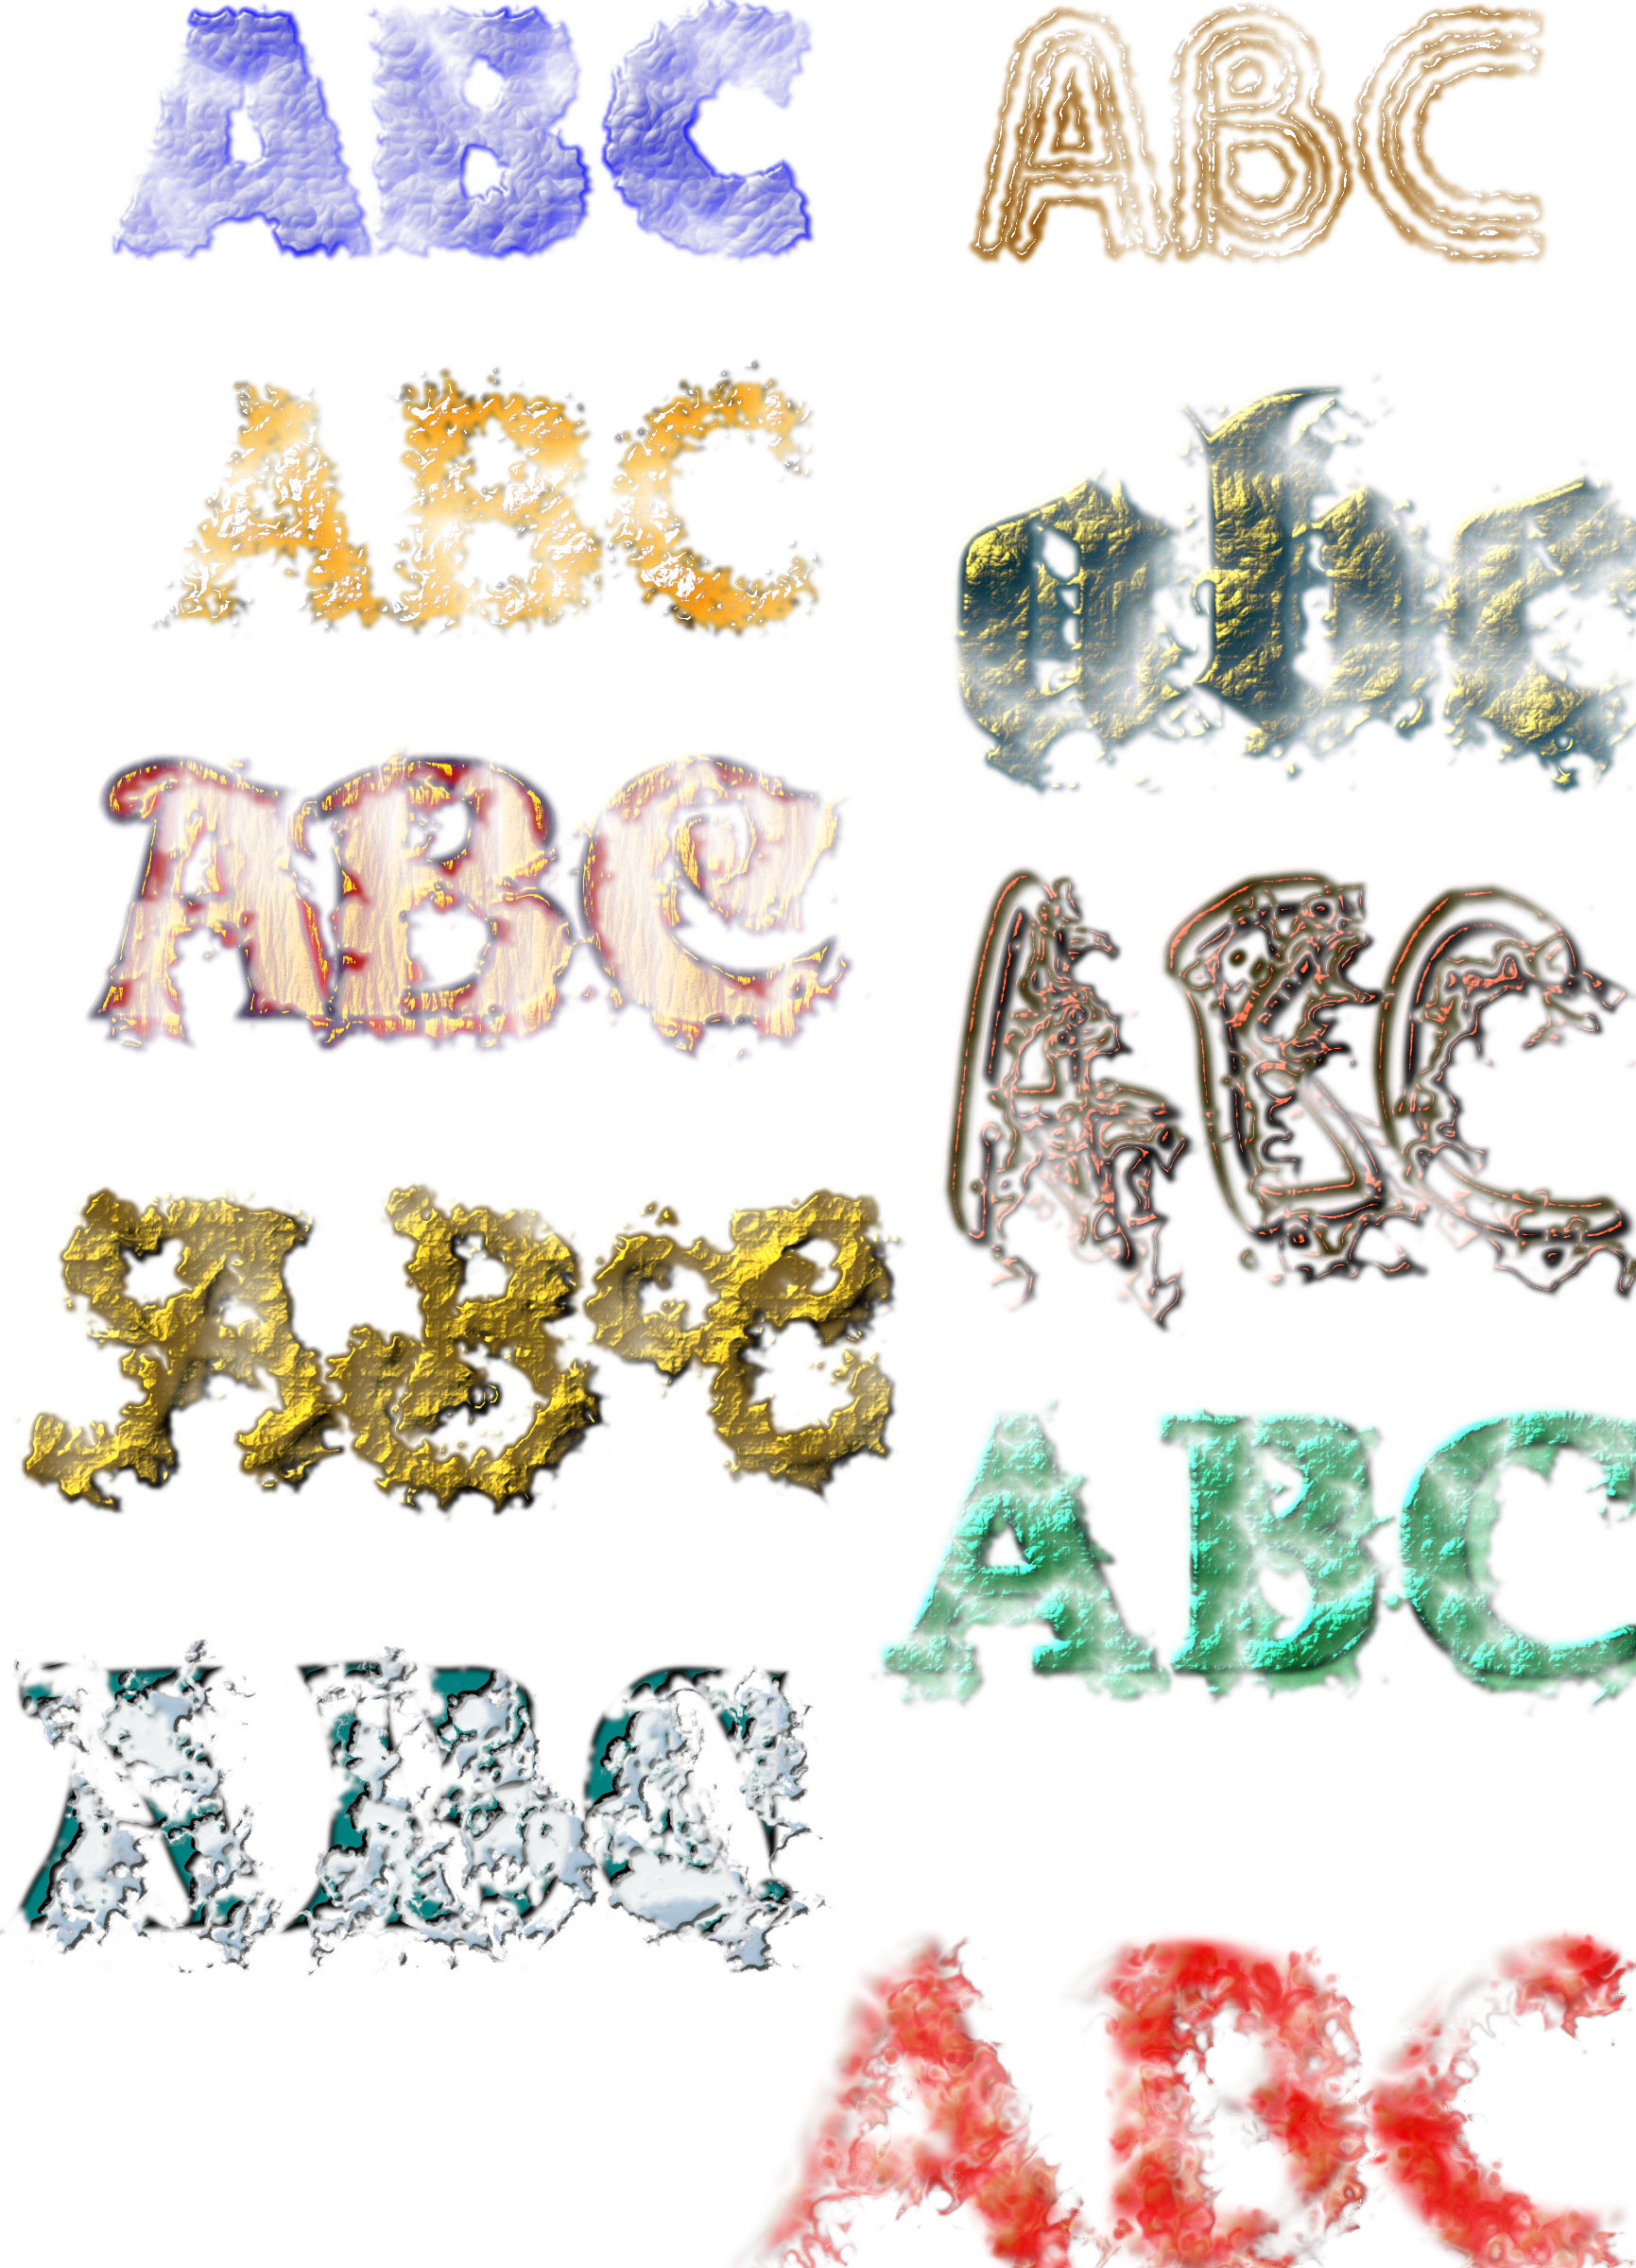 Ten Text Textures by ivan_louette